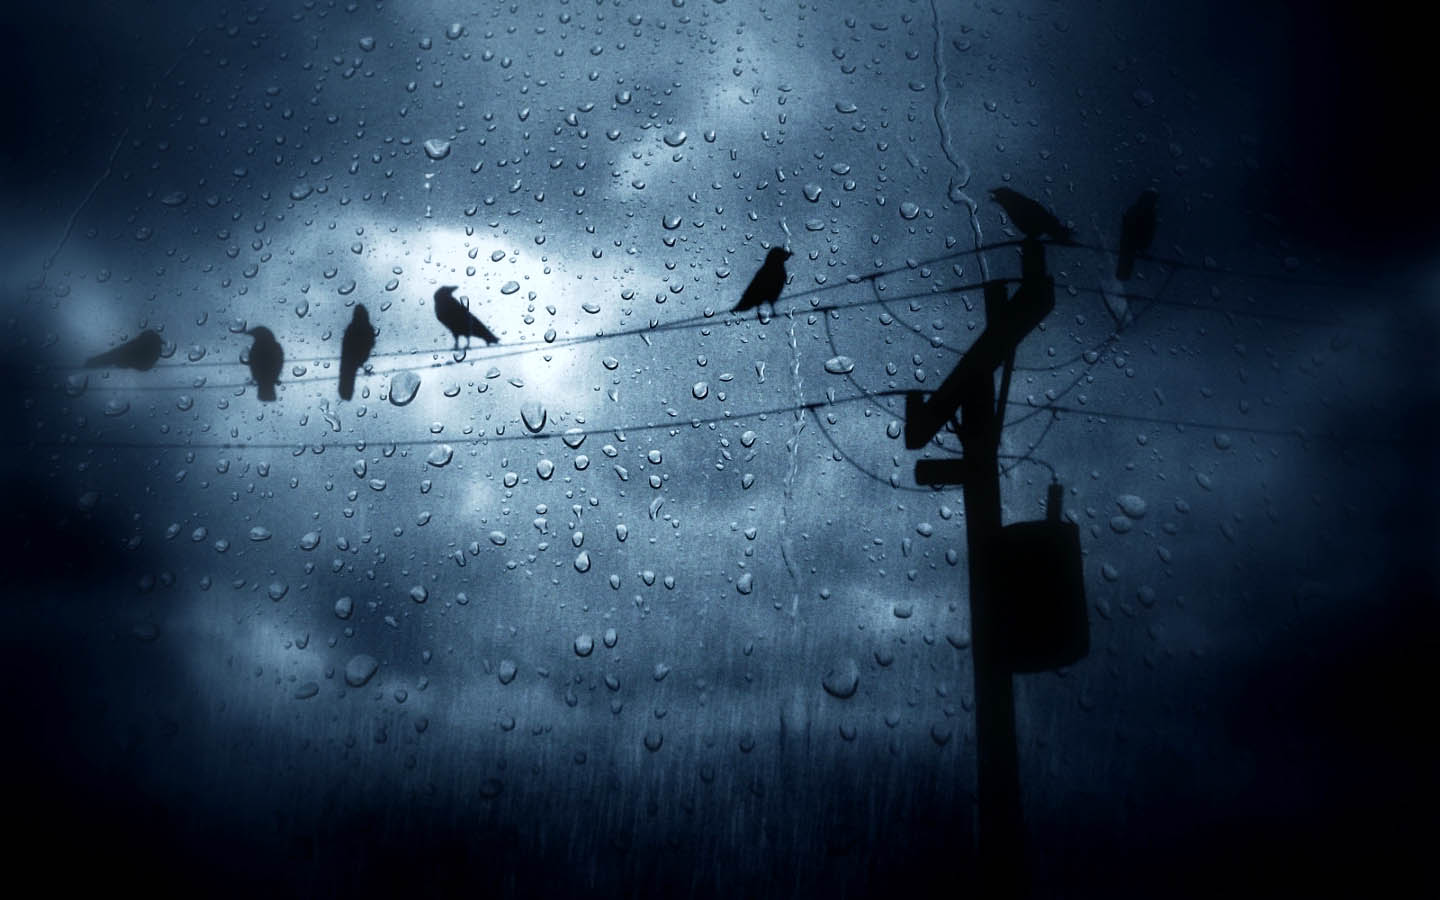 The Birds In The Rain HD Wallpaper Animals Wallpapers 1440x900